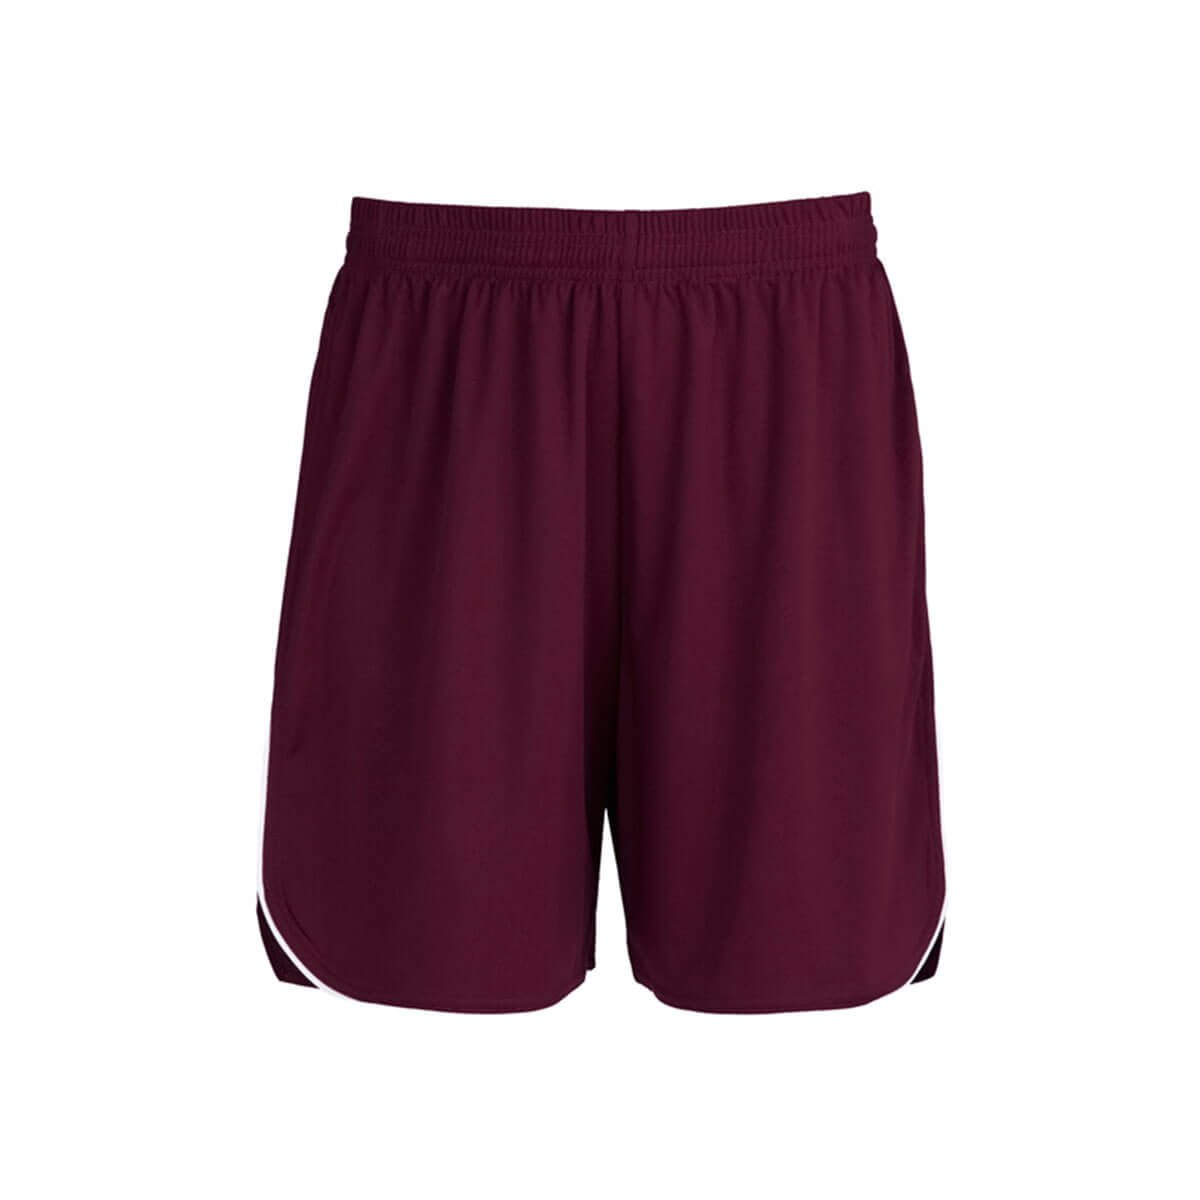 Mens Sonic Shorts-Maroon / White